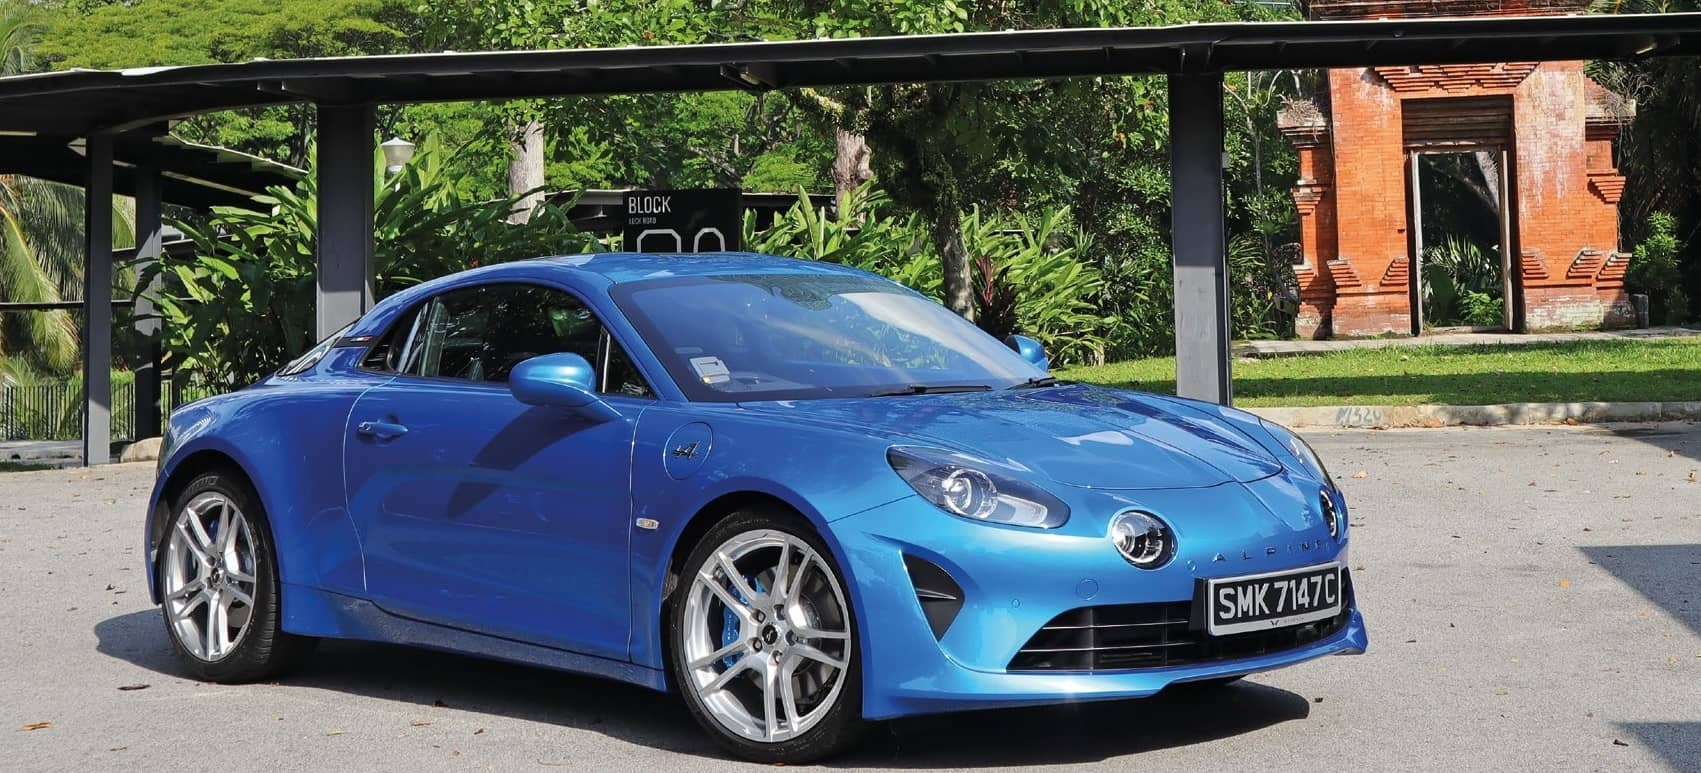 Alpine A110 Can Easily Twirl And Dance Its Way Into A Petrolhead's Heart